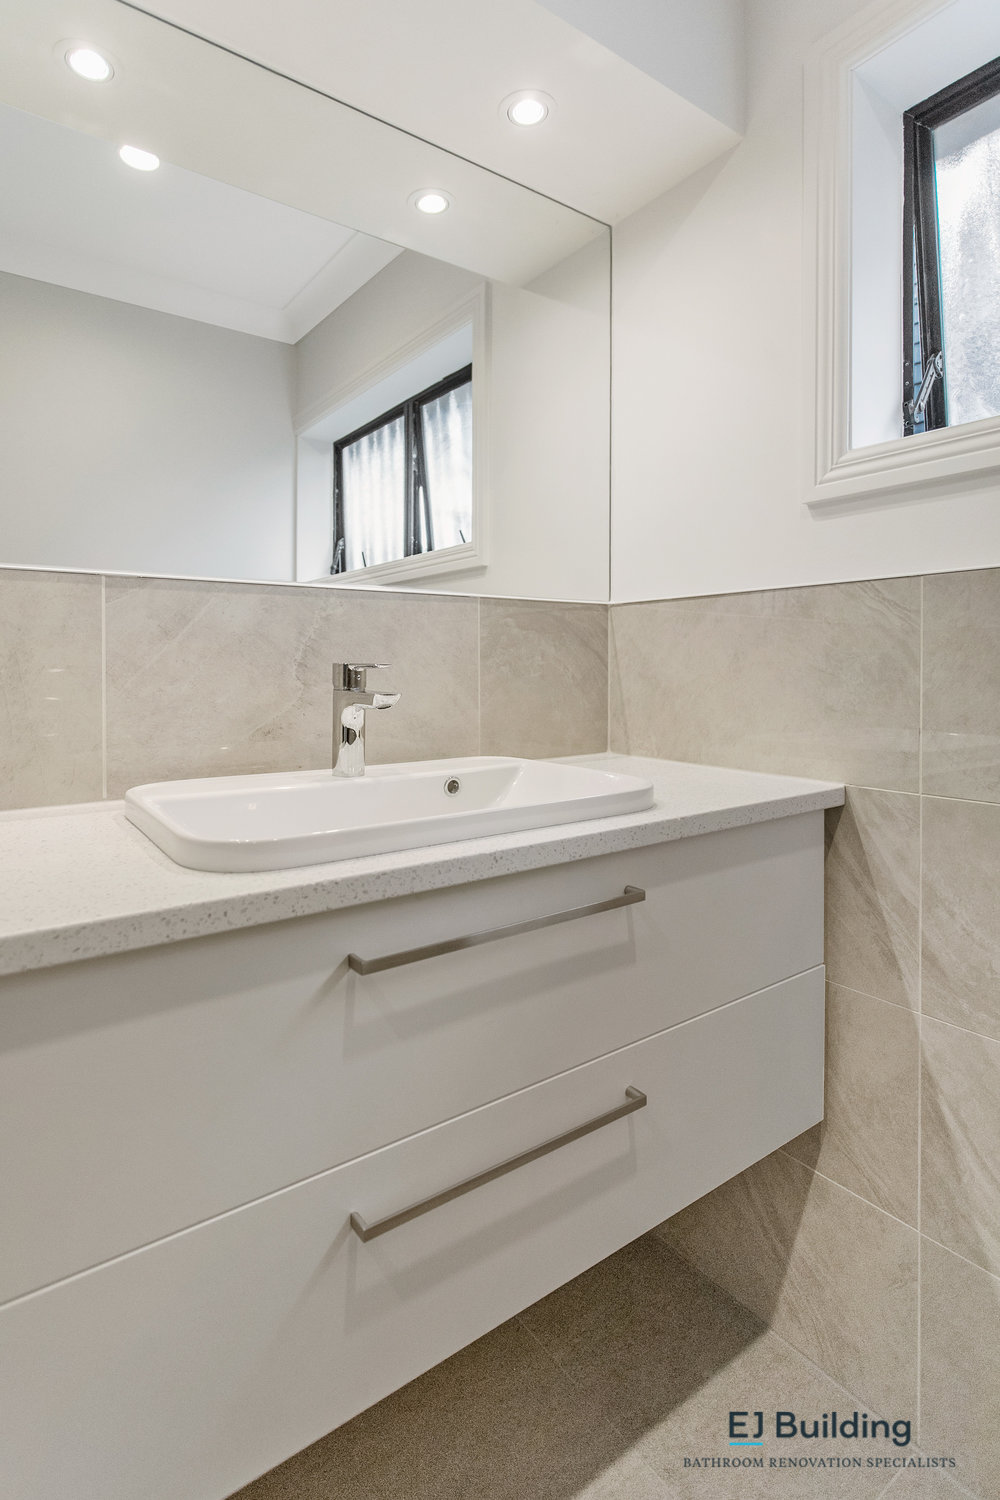 Ellerslie bathroom renovator Auckland. Bathroom vanity with stone vanity top. Bathroom mirror sitting on half high tiles.